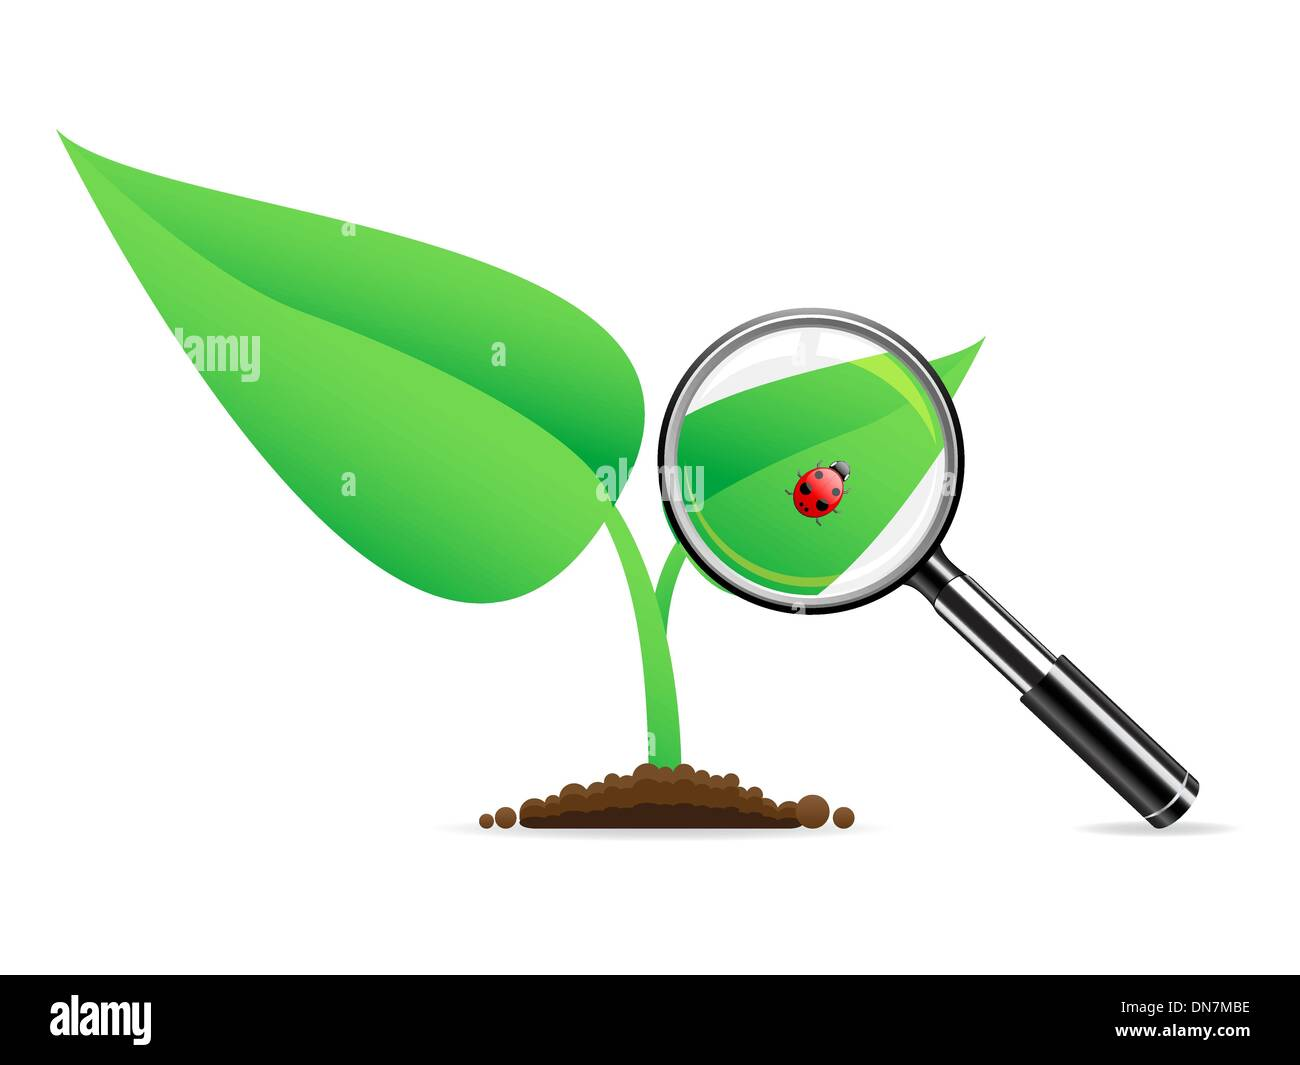 Magnifying glass an ladybug stock vector art illustration magnifying glass an ladybug pooptronica Gallery